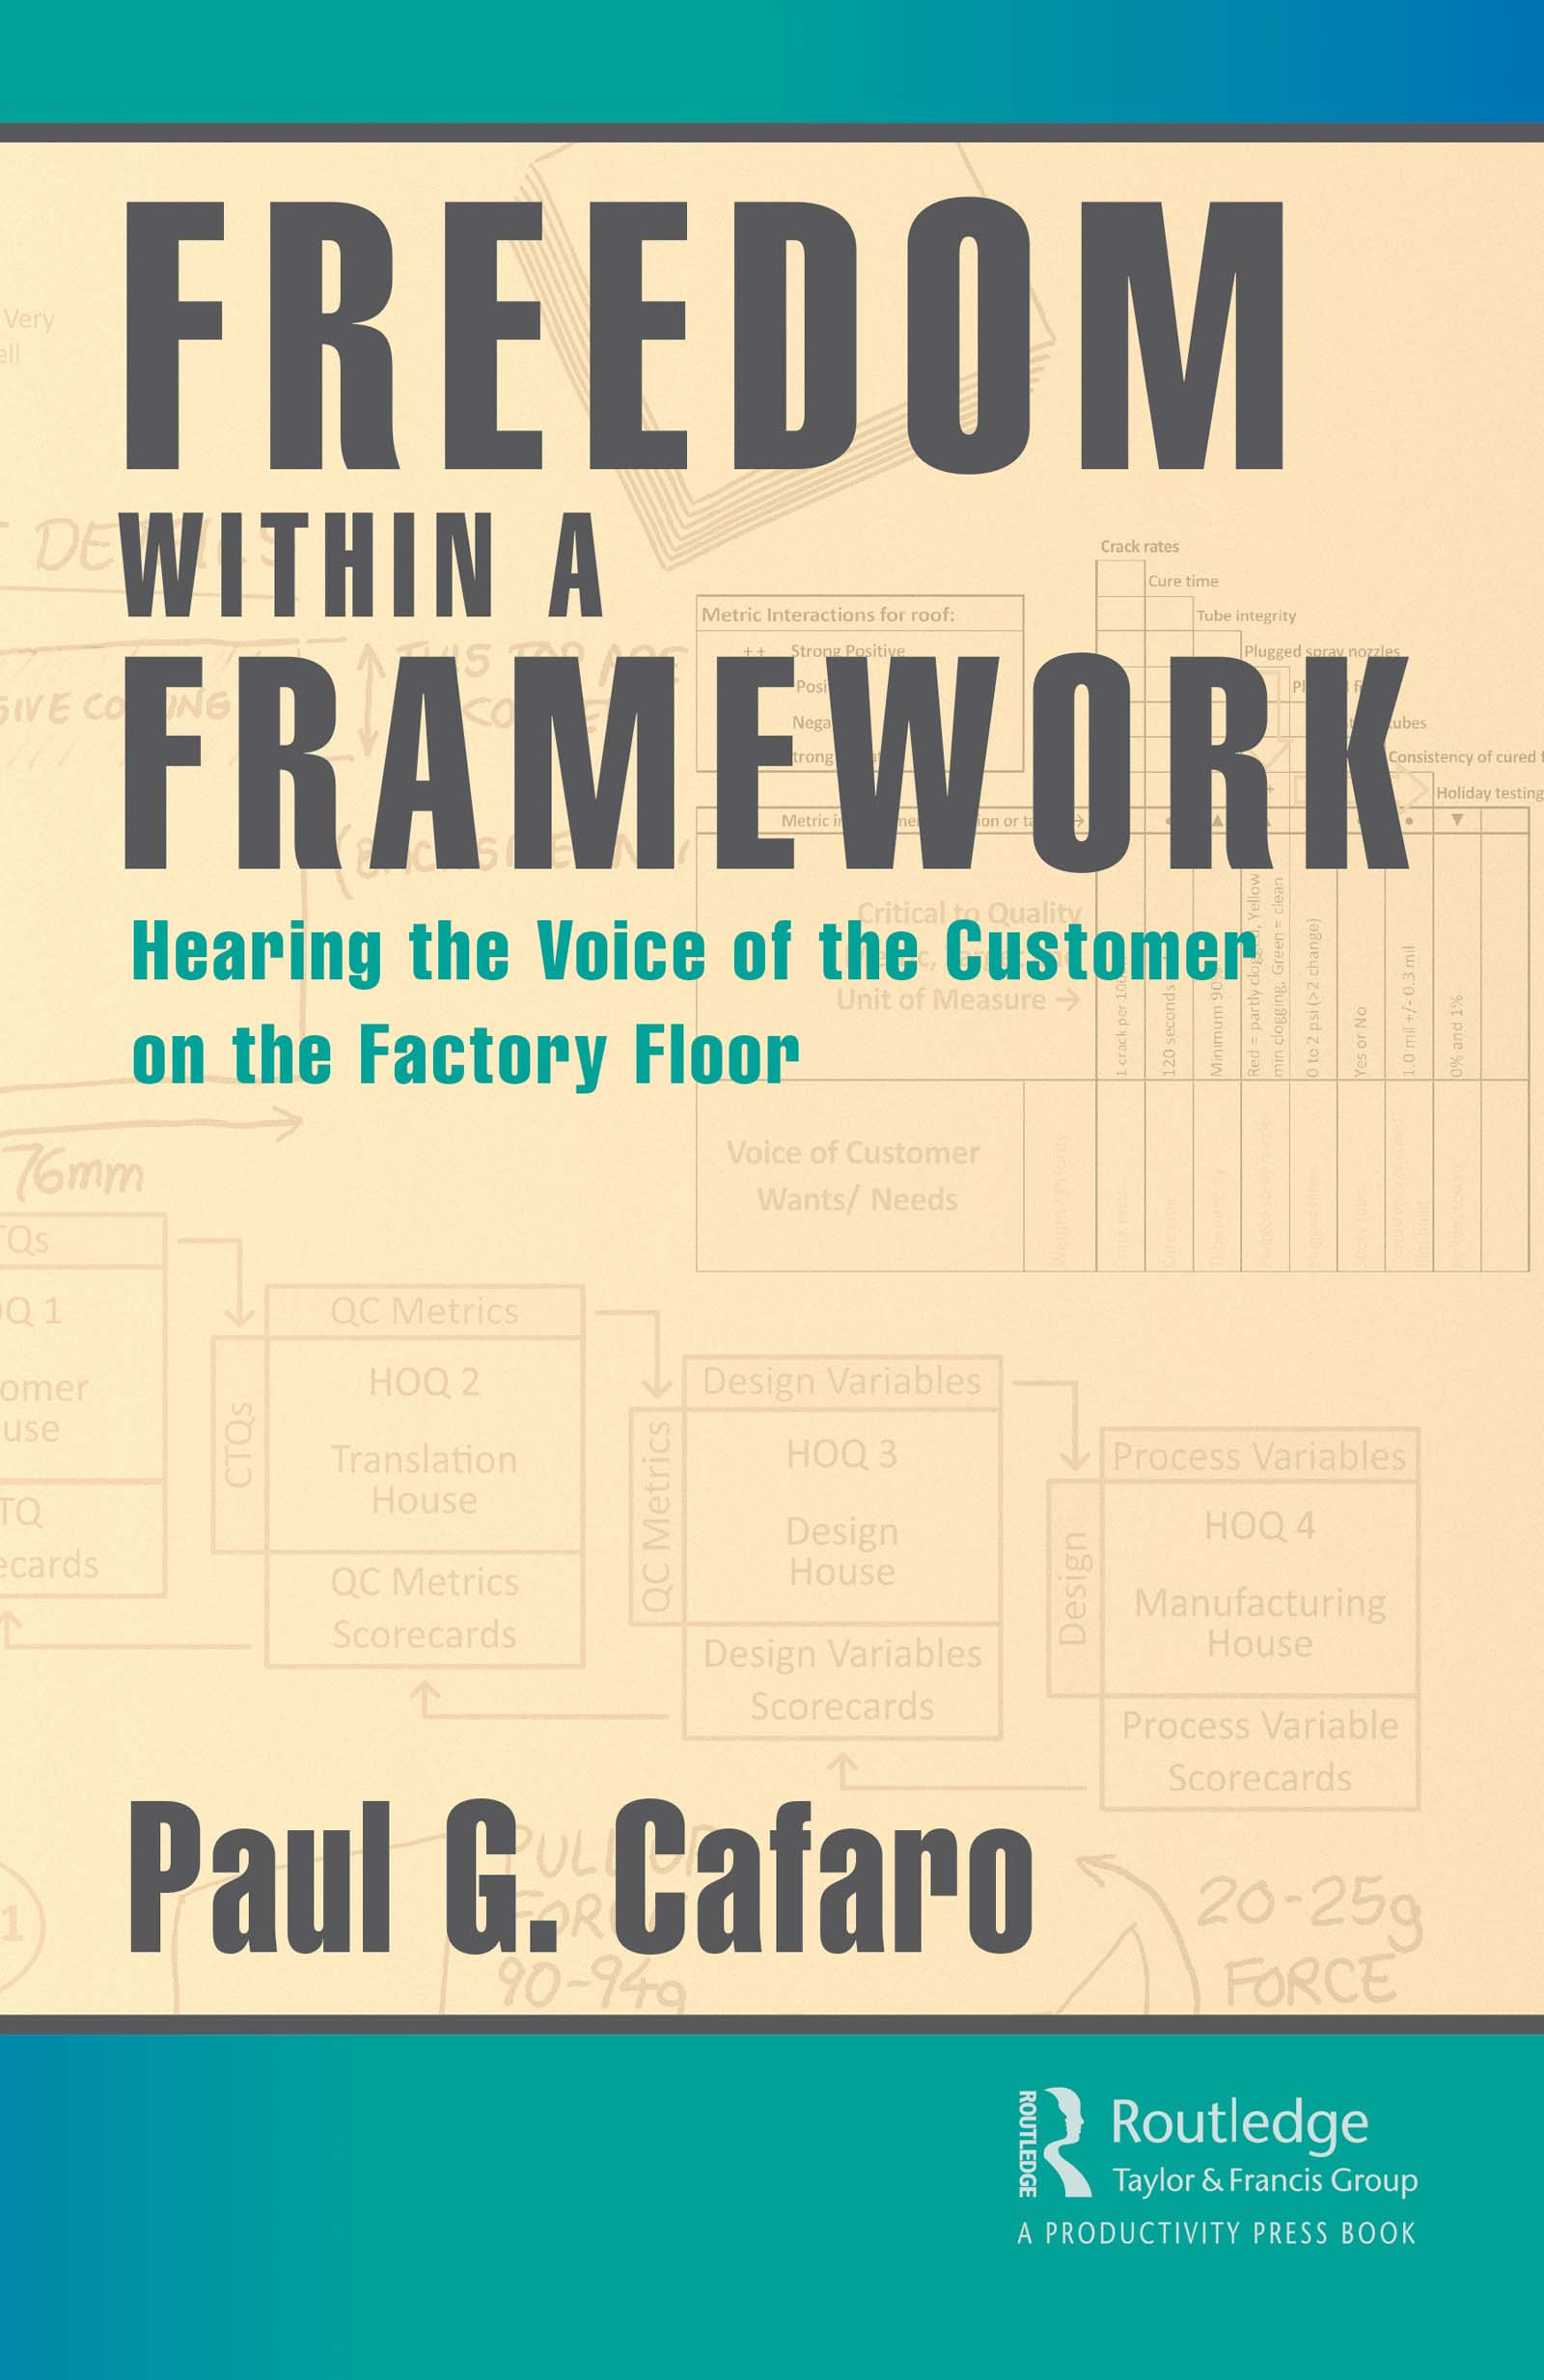 Freedom Within a Framework: Hearing the Voice of the Customer on the Factory Floor book cover